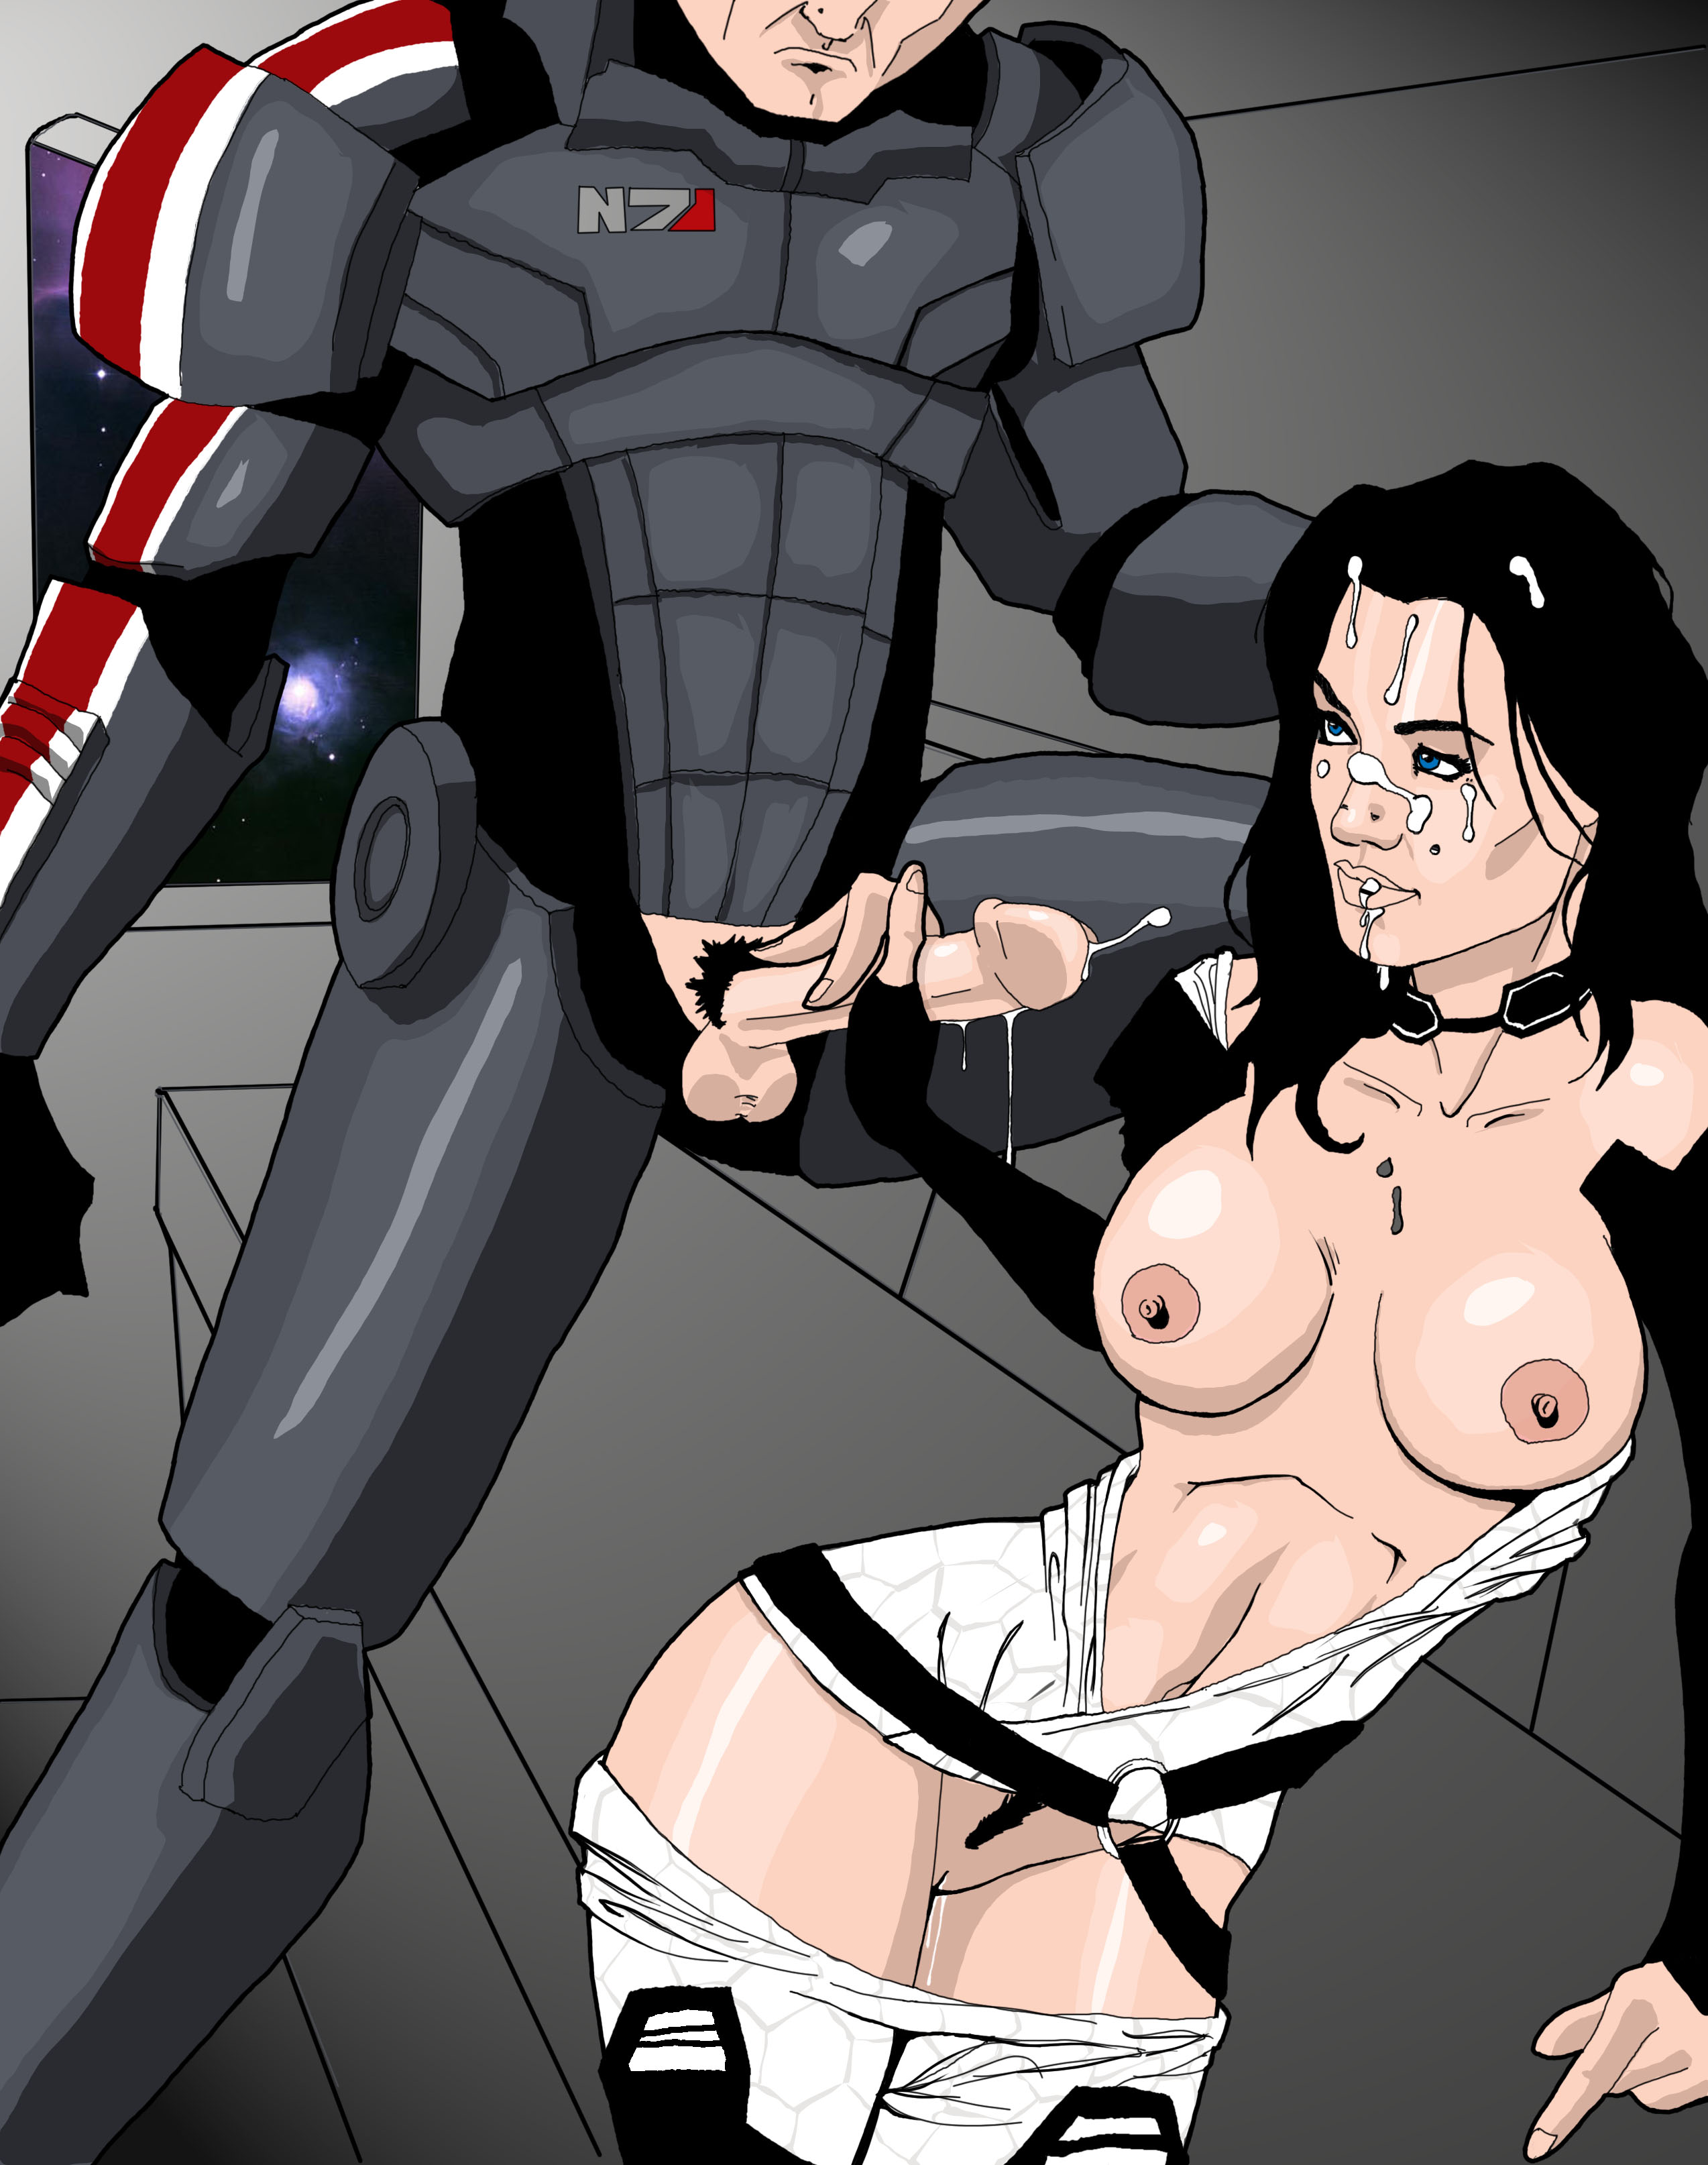 Mass effect hentai sex galleries naked scene